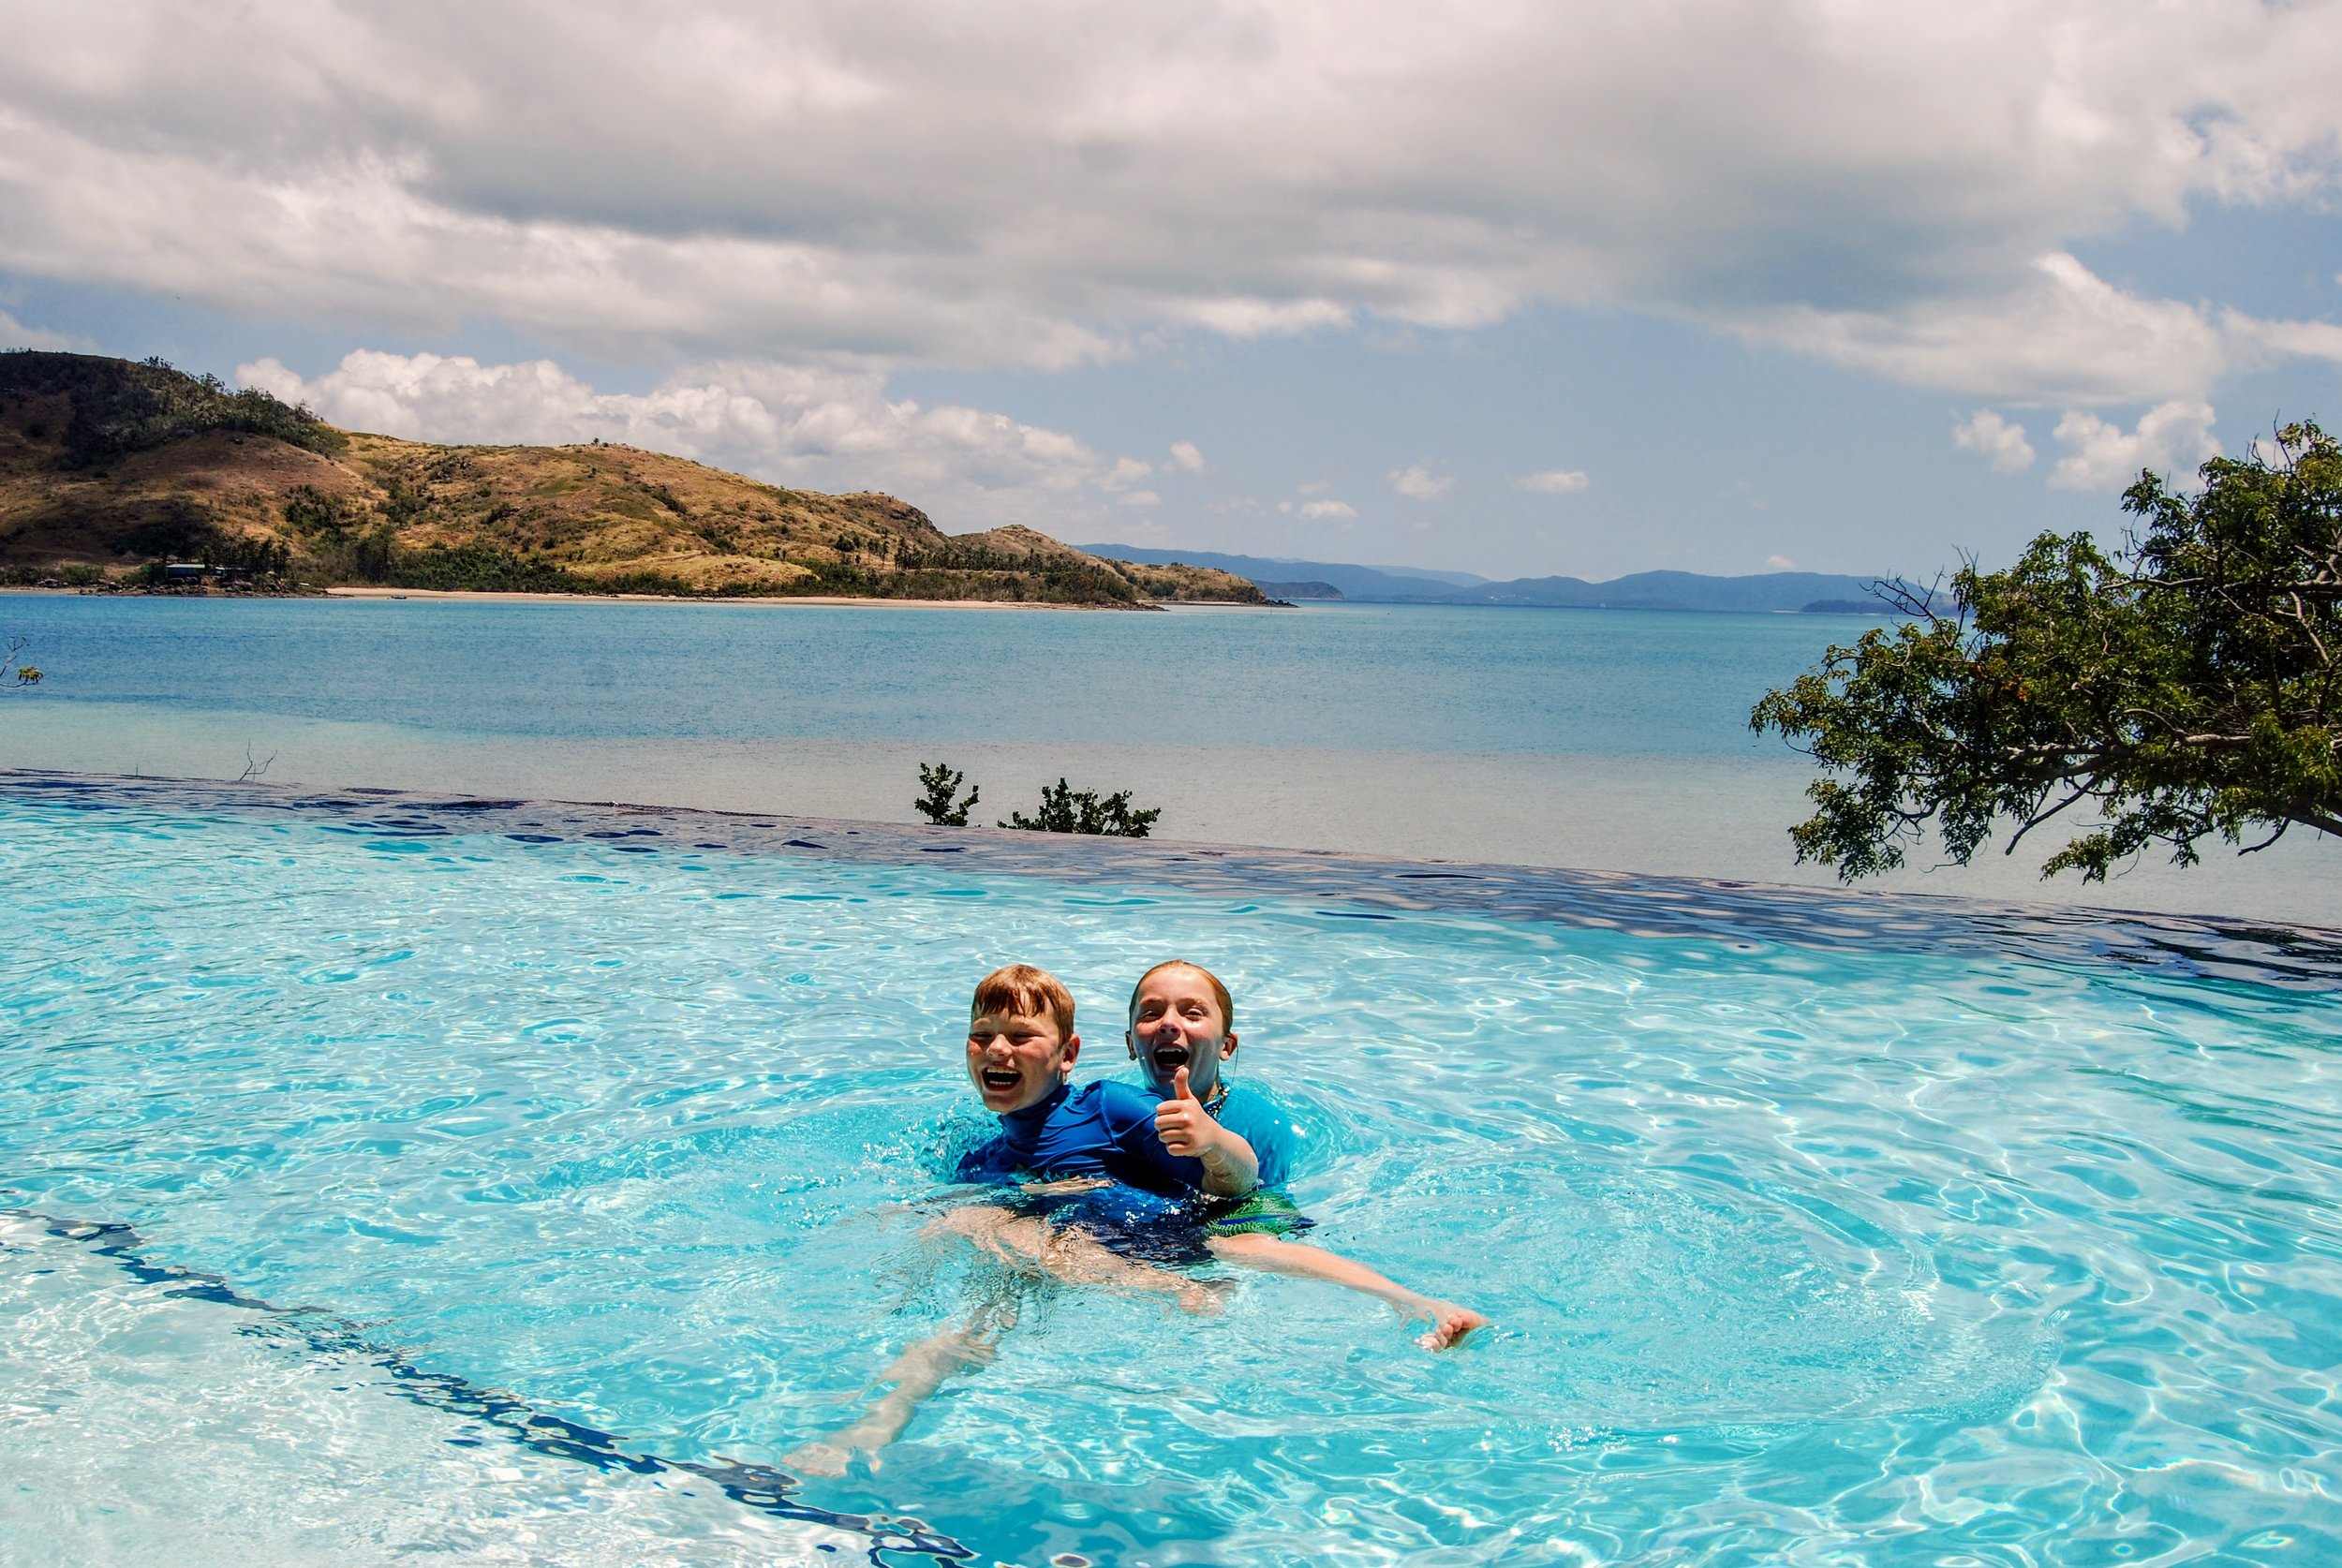 But they also appproved of the infinity pool at Shorelines.